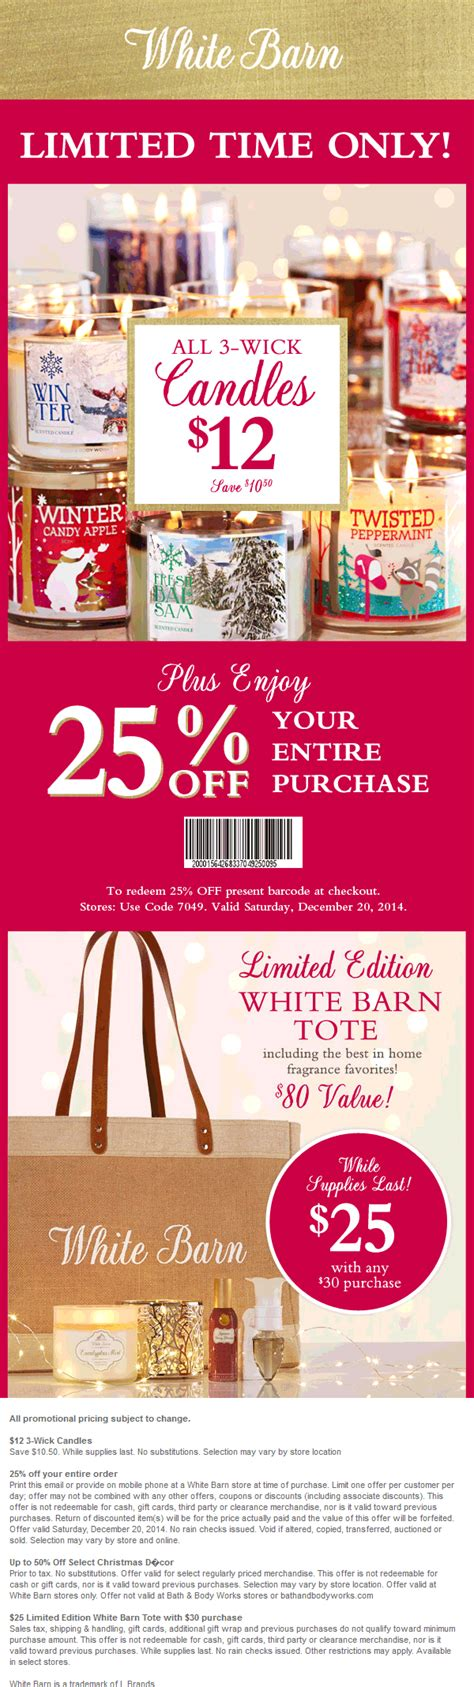 White Barn Candle Coupons white barn coupons 25 today at white barn candles